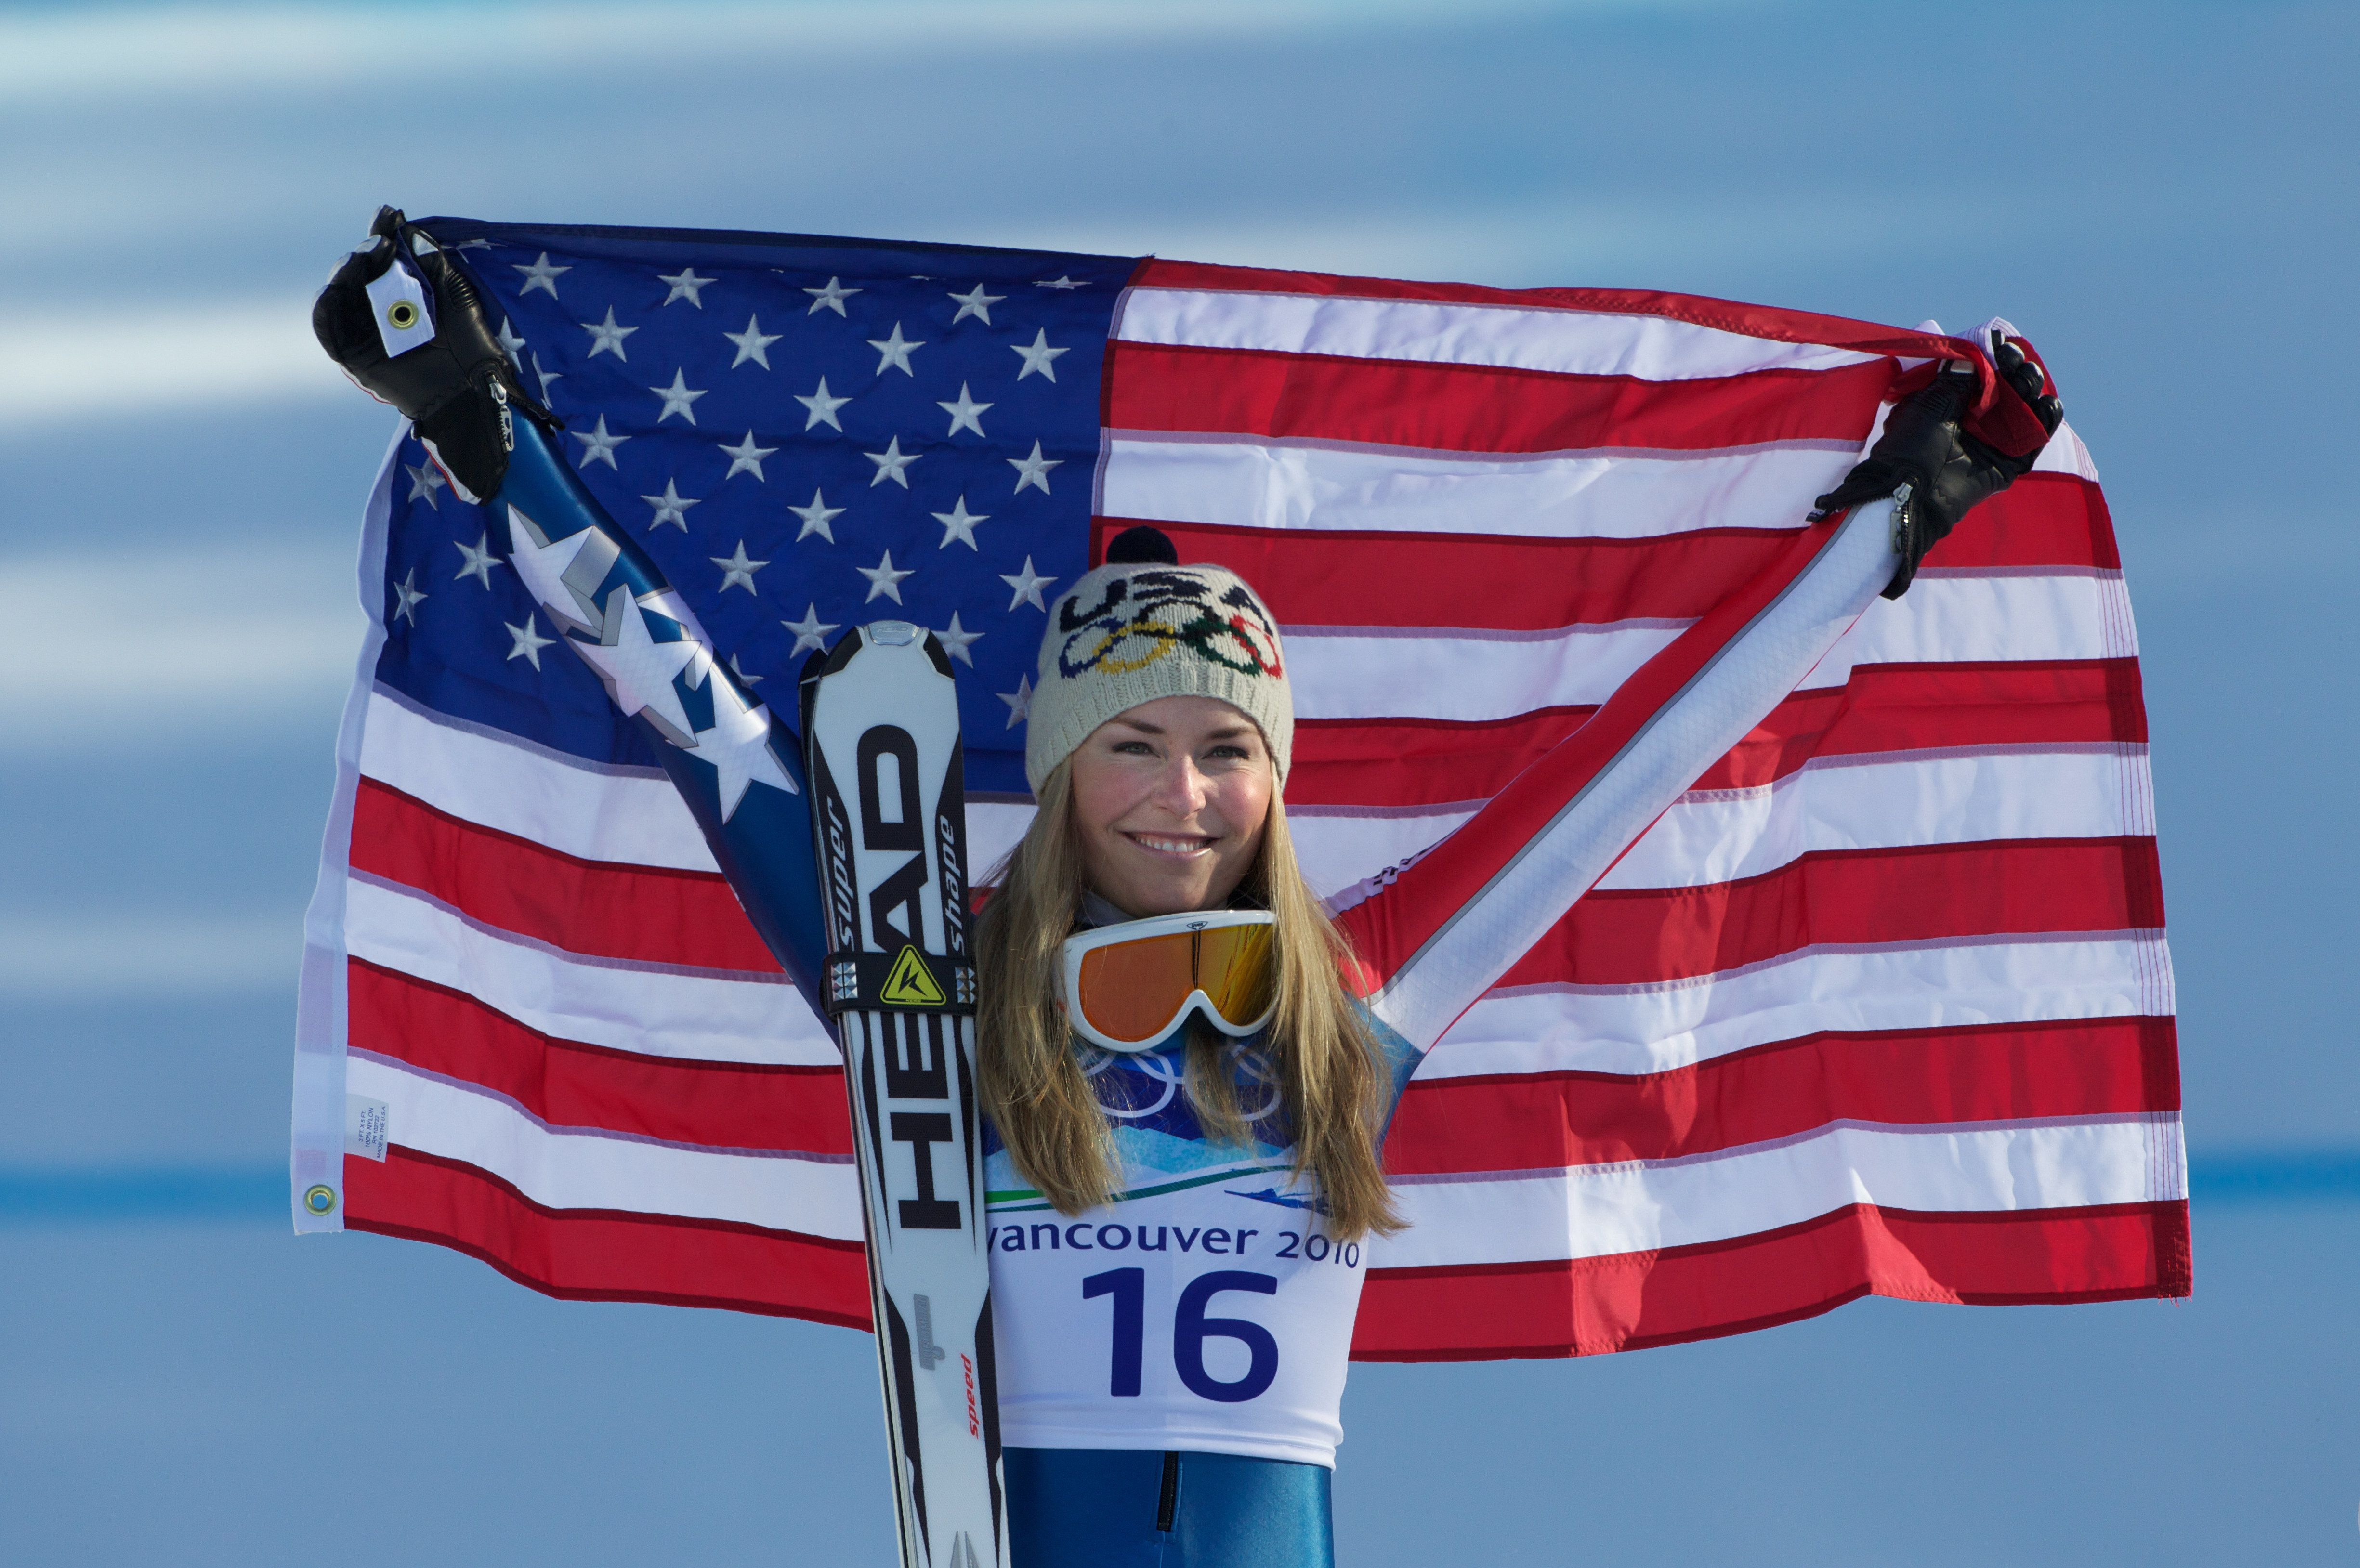 United States expects to participate in Winter Olympics: White House